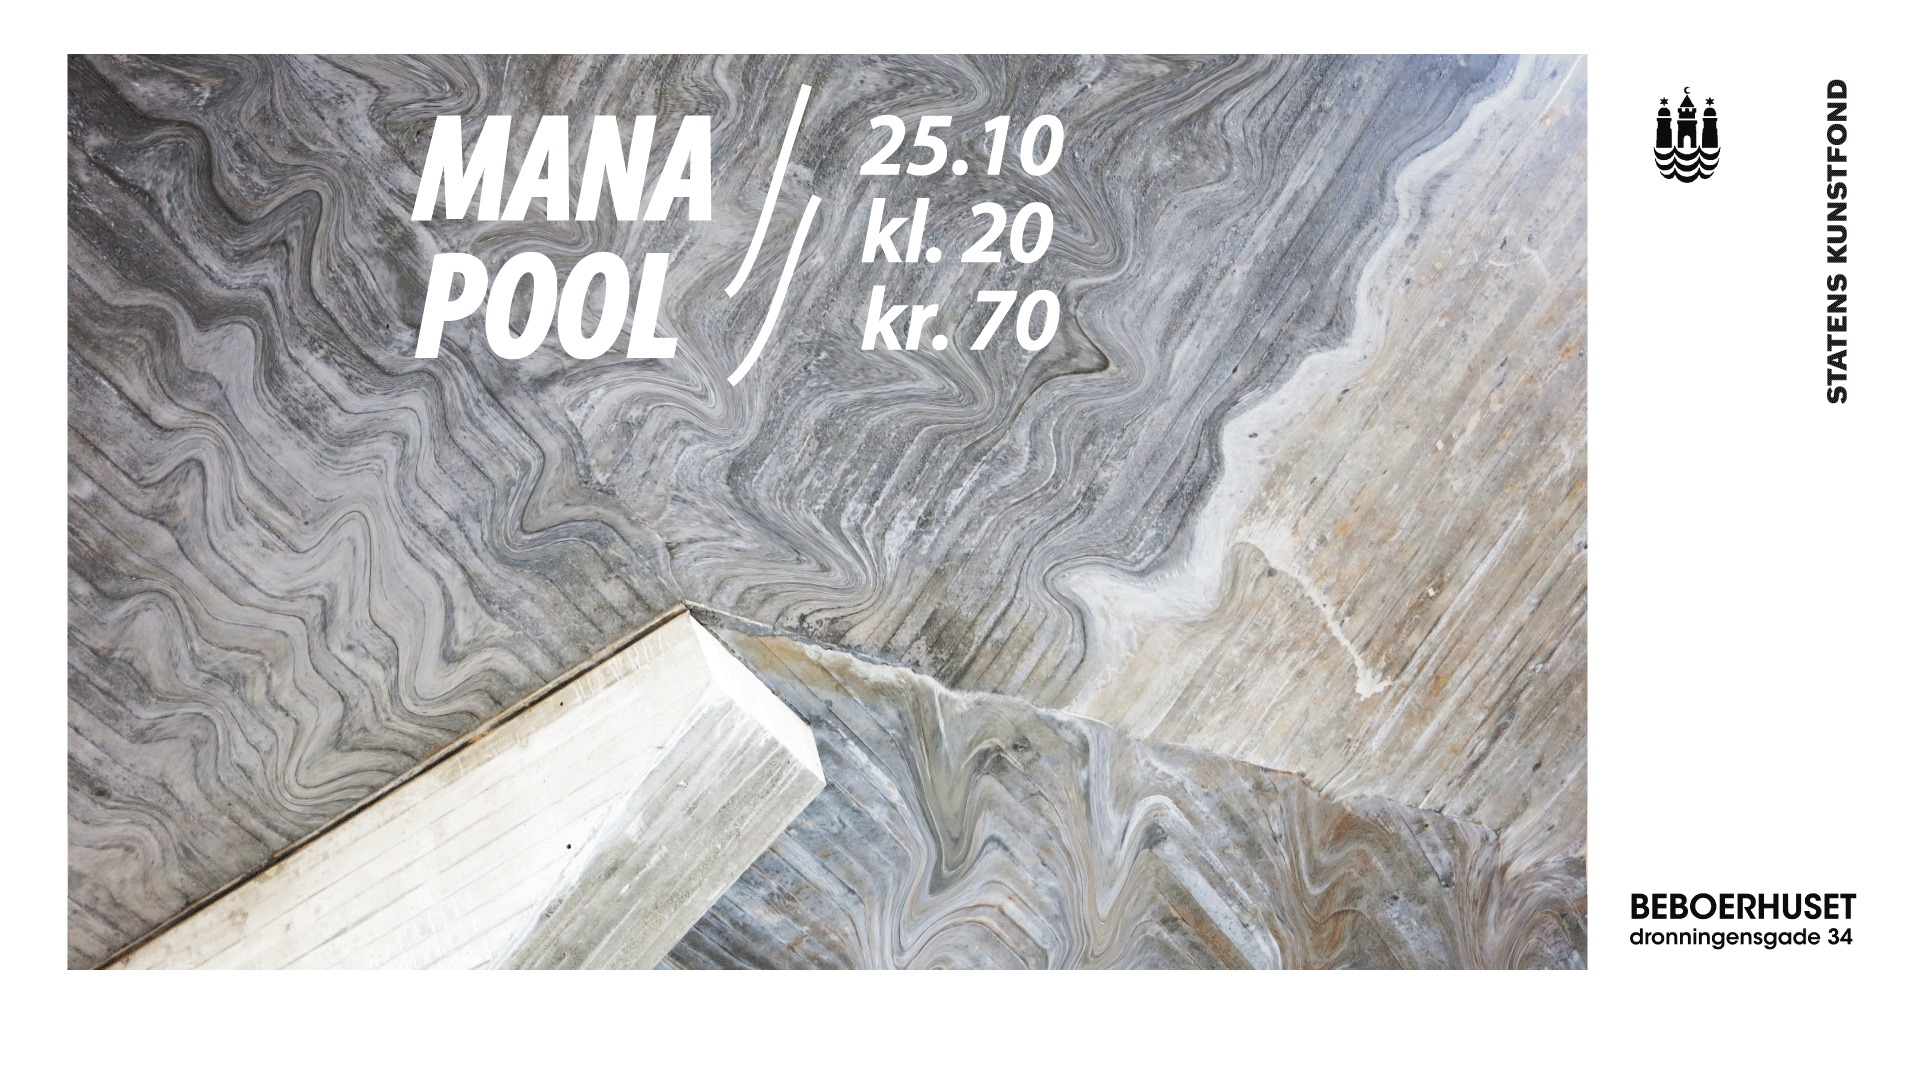 MANA POOL (& Special guests)